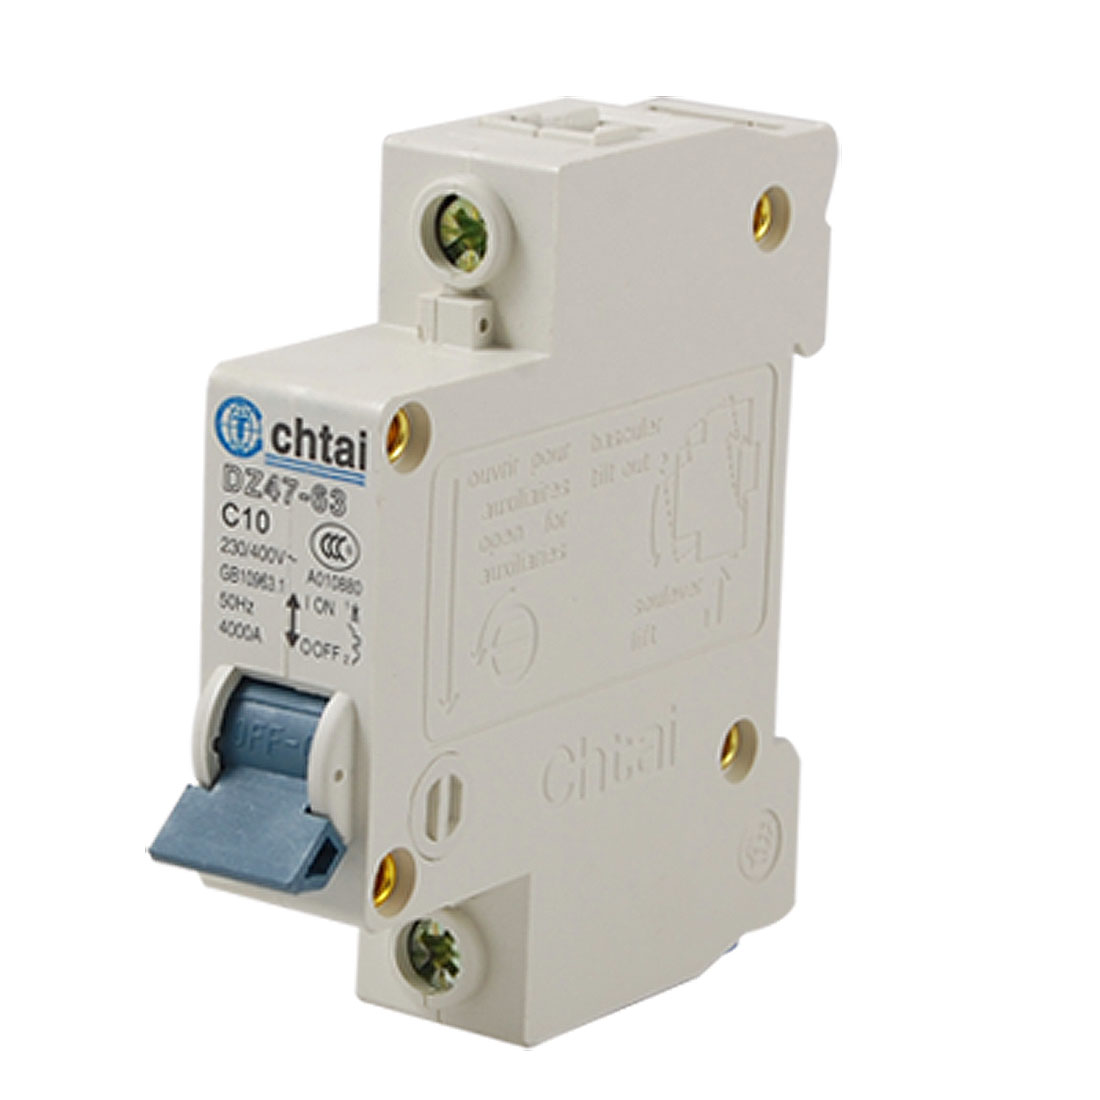 DZ47-63 10A Electrical Single Pole MCB Mini Circuit Breaker